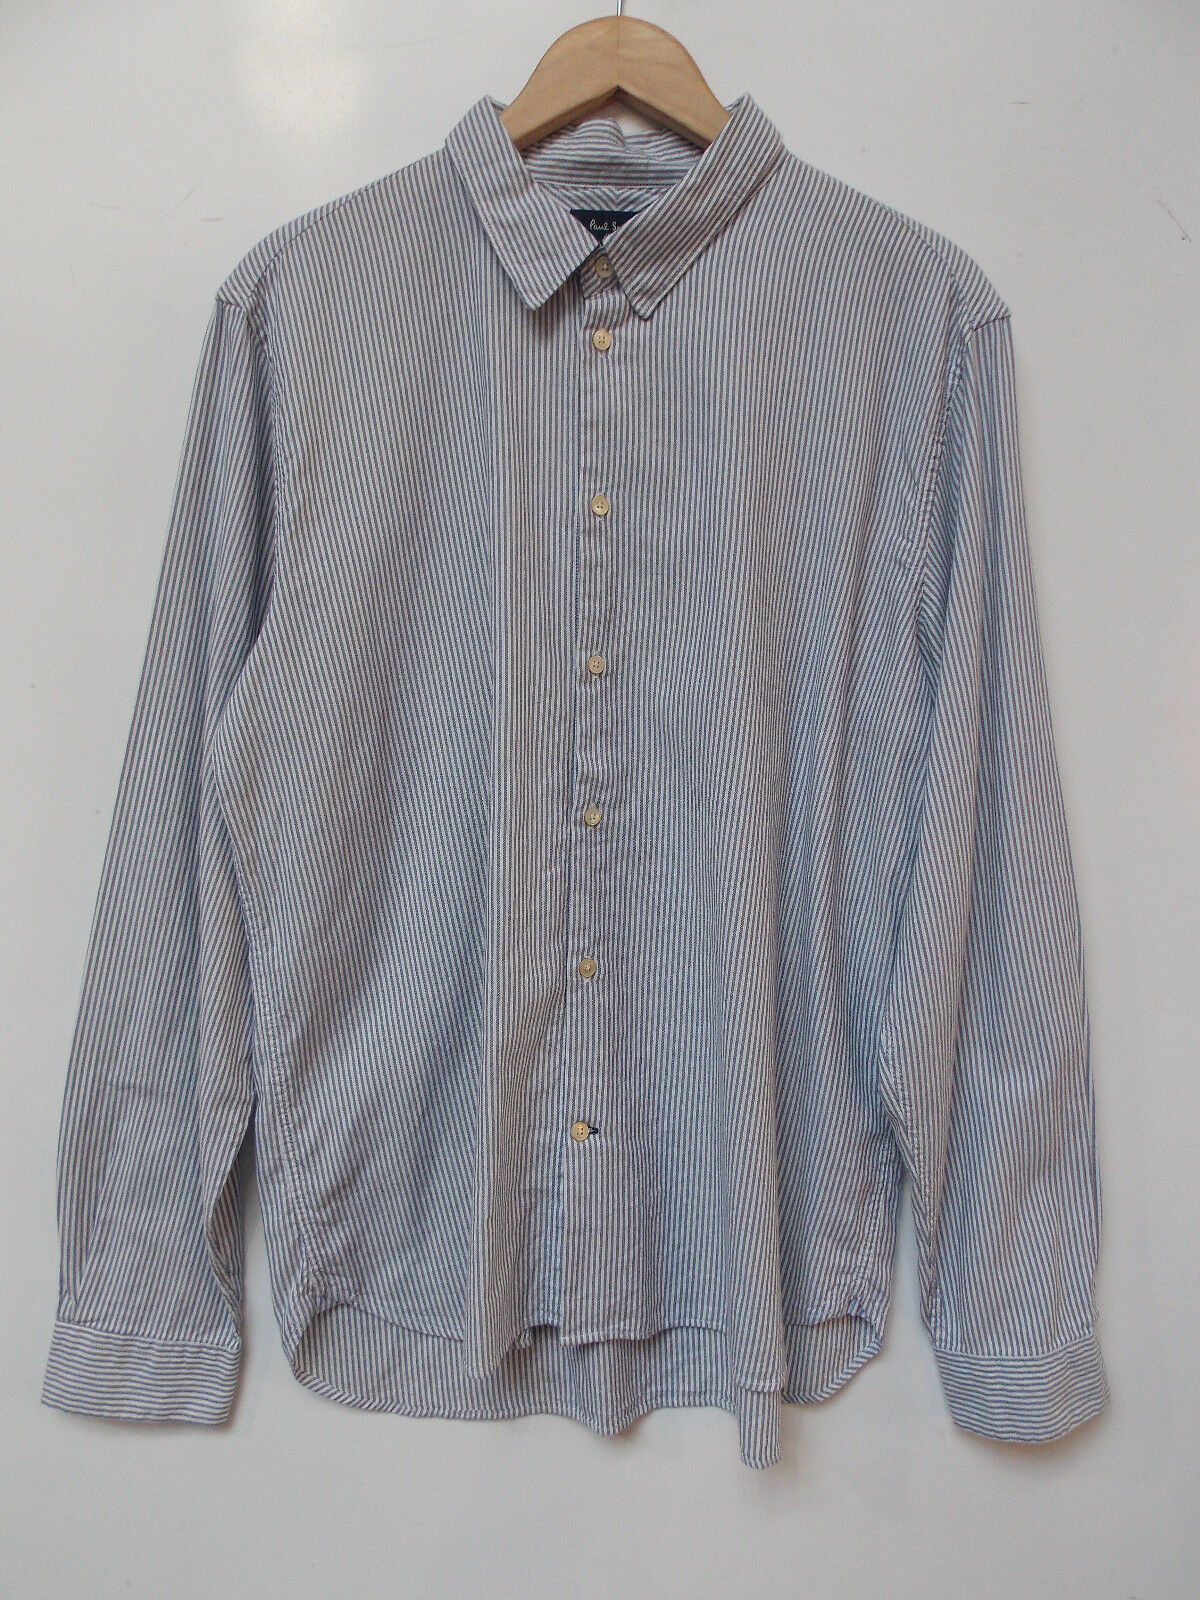 Paul Smith Classic Fit Striped Shirt BNWOT Designer Mens Top Clothing